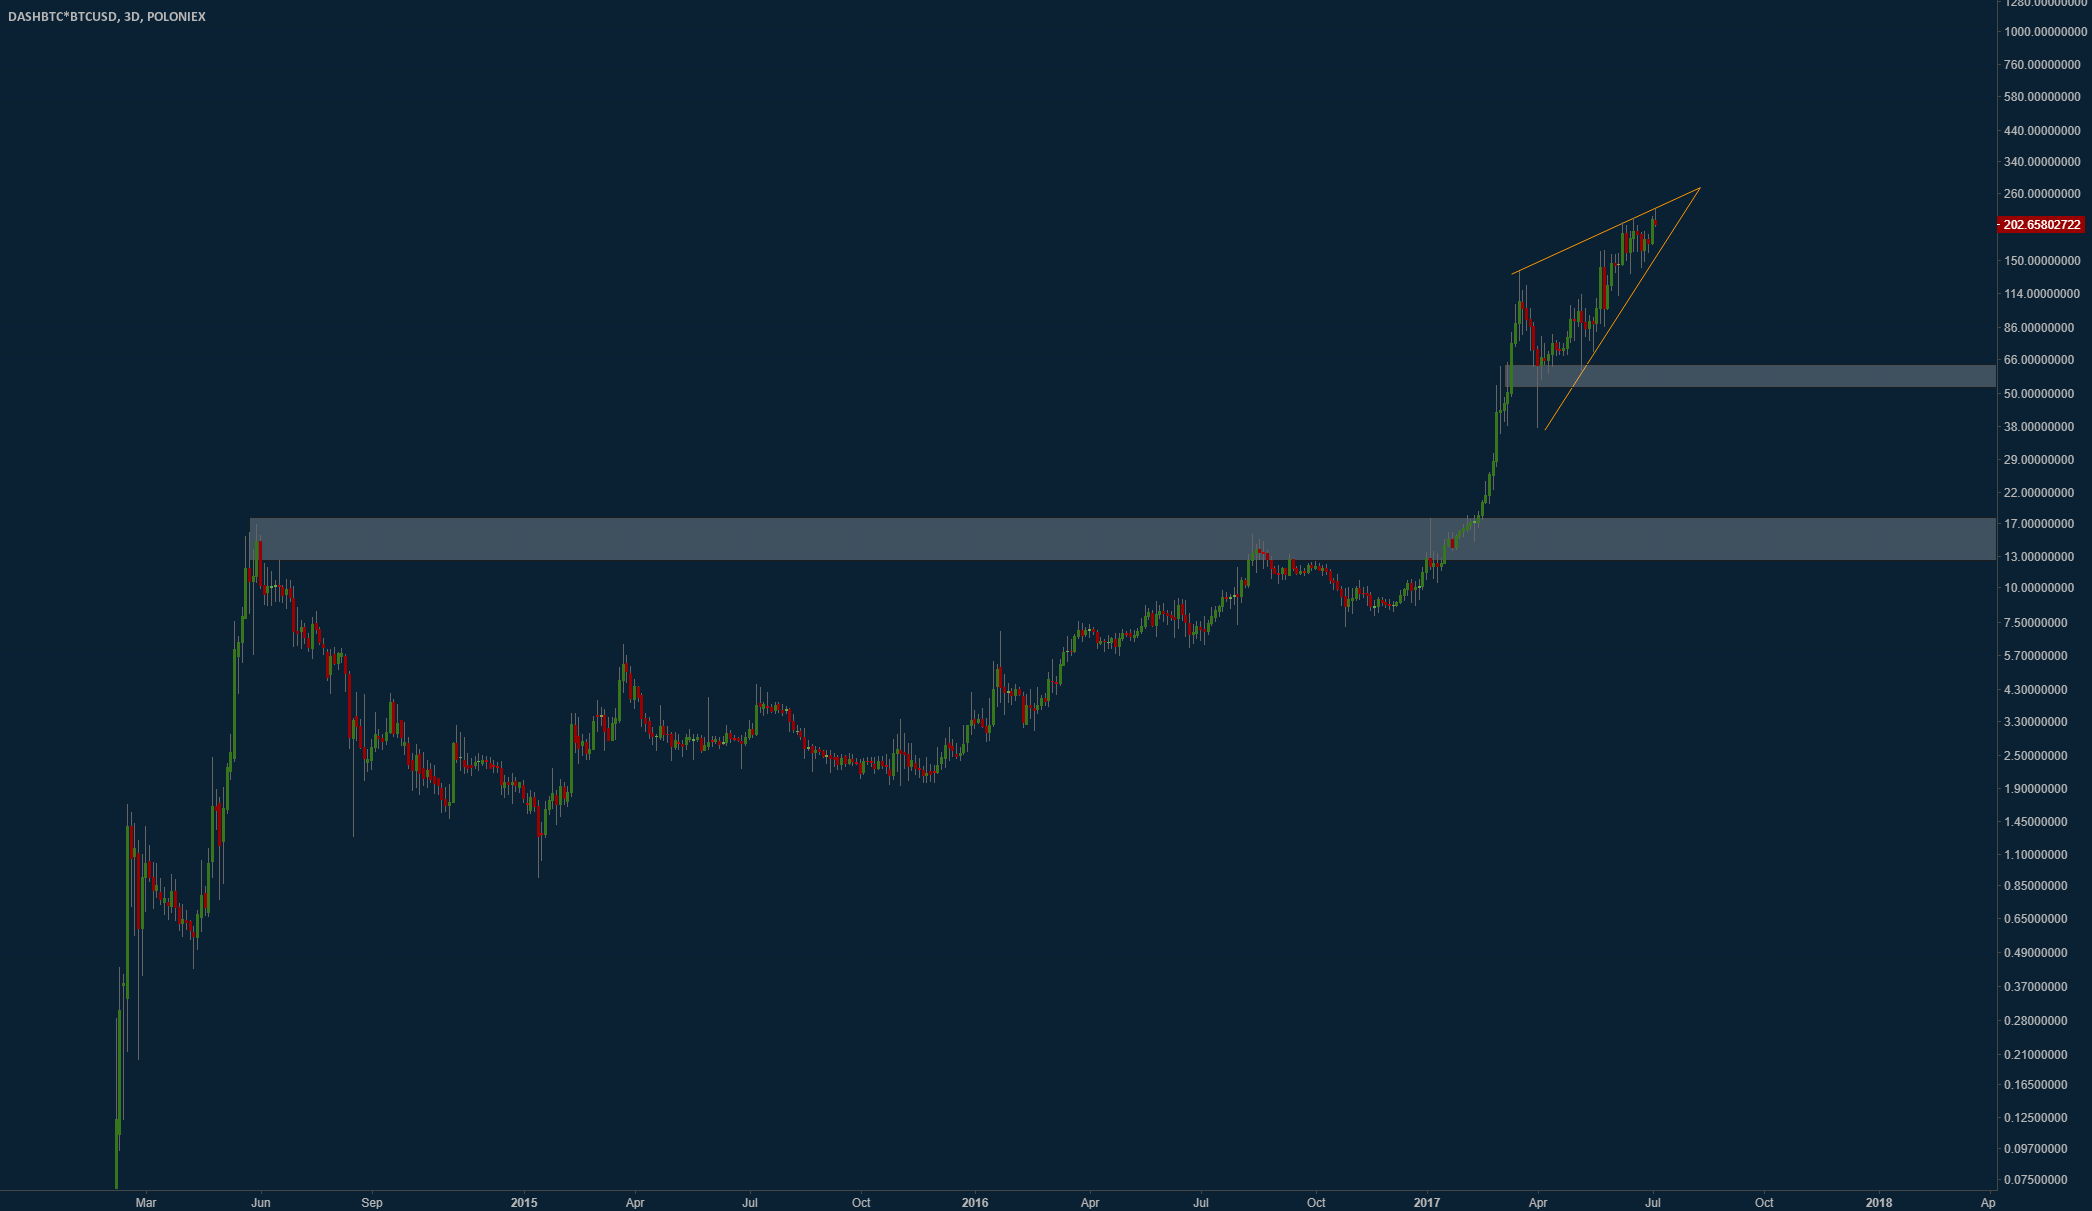 Get out of DASH. Nasty rising wedge on DASHUSD